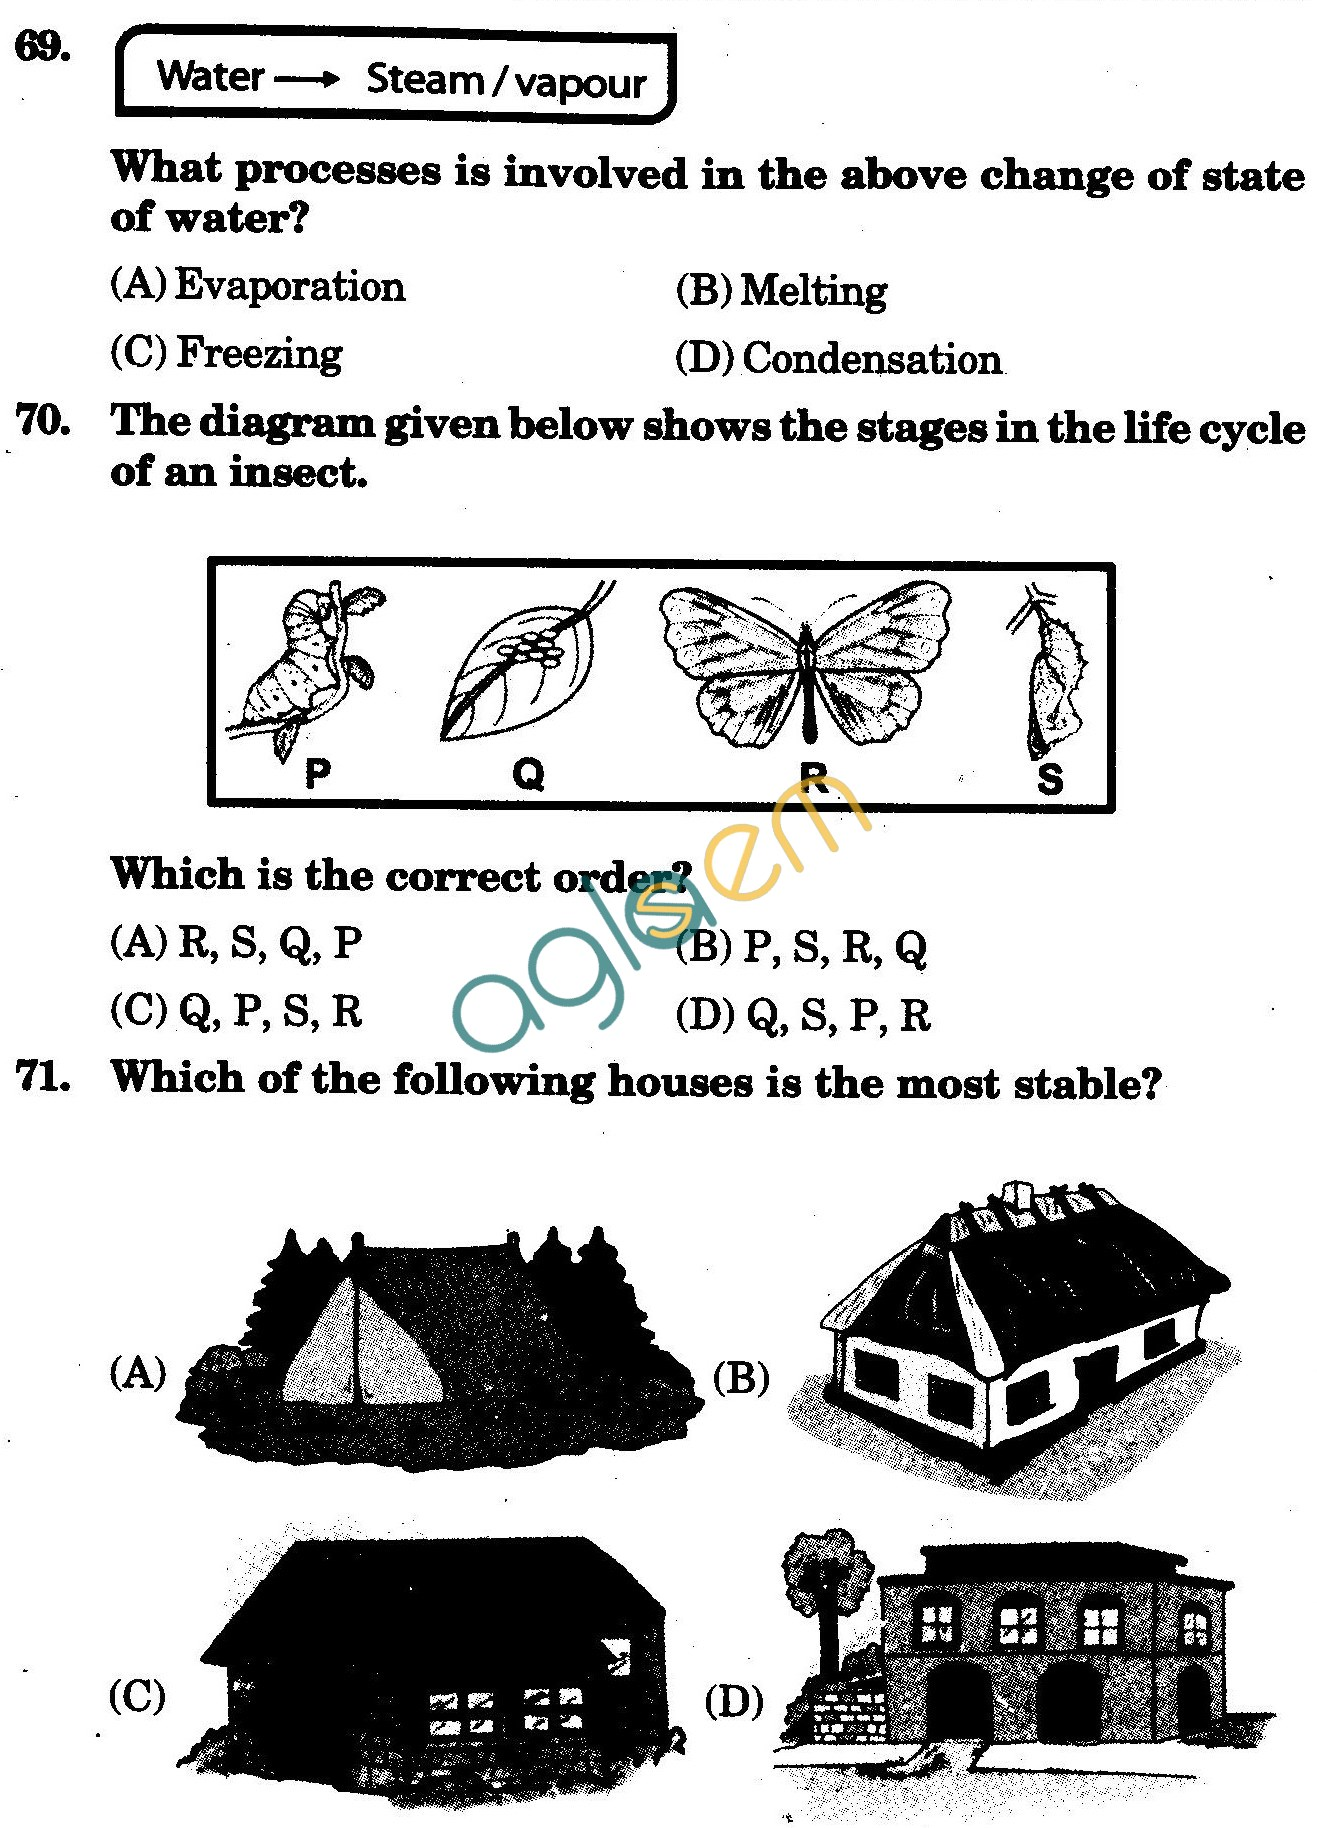 NSTSE 2010: Class IV Question Paper with Answers - Science